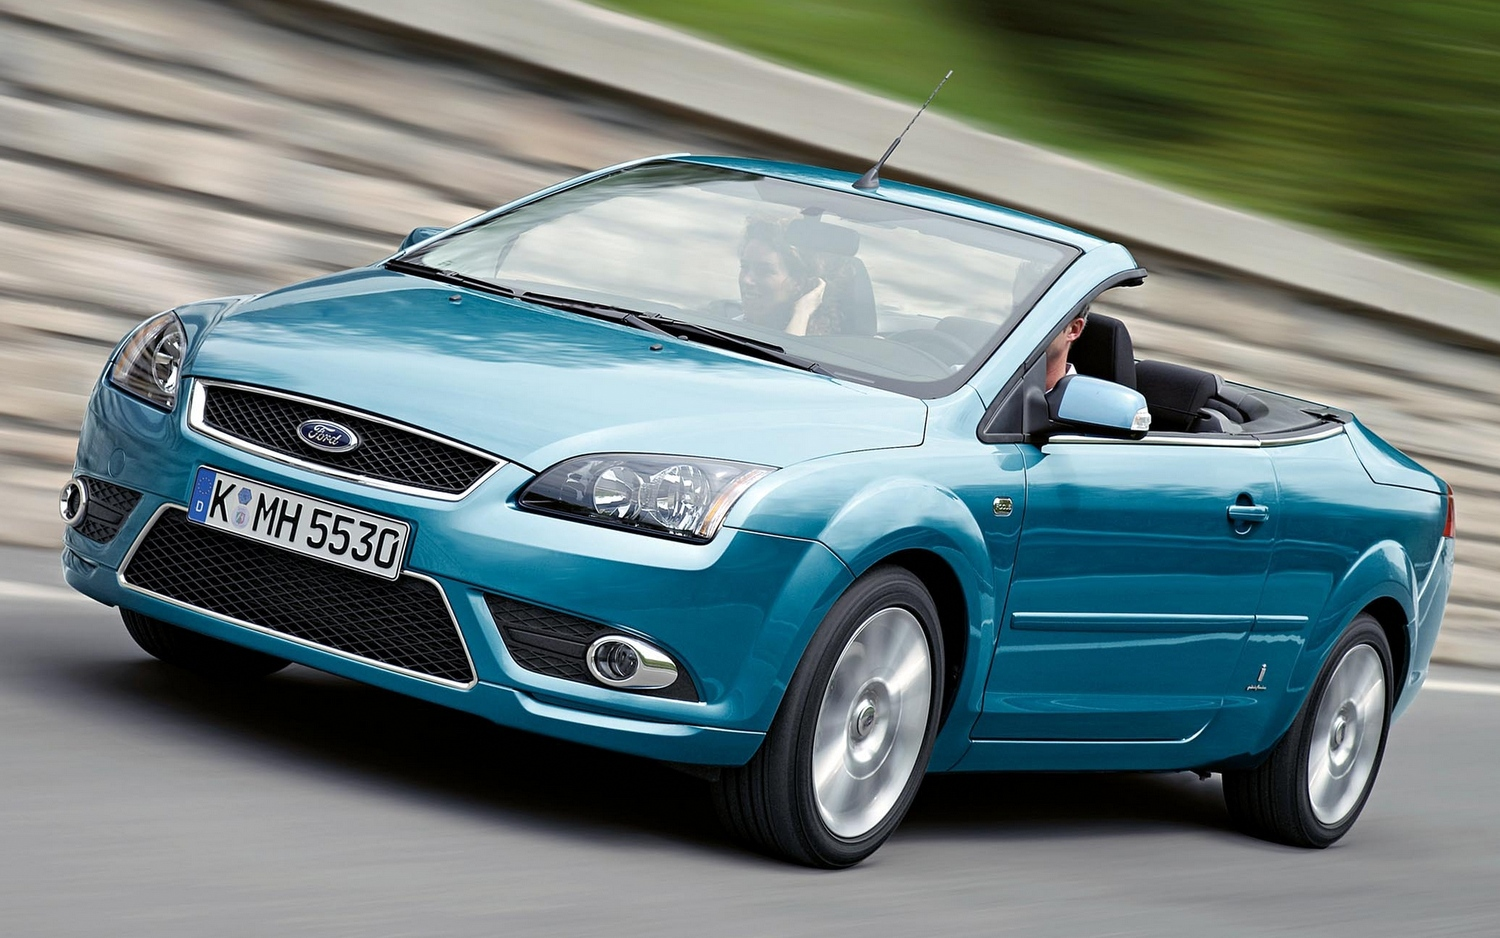 2015 Ford Focus coupe cabriolet ii – pictures. information and specs - Auto-Database.com